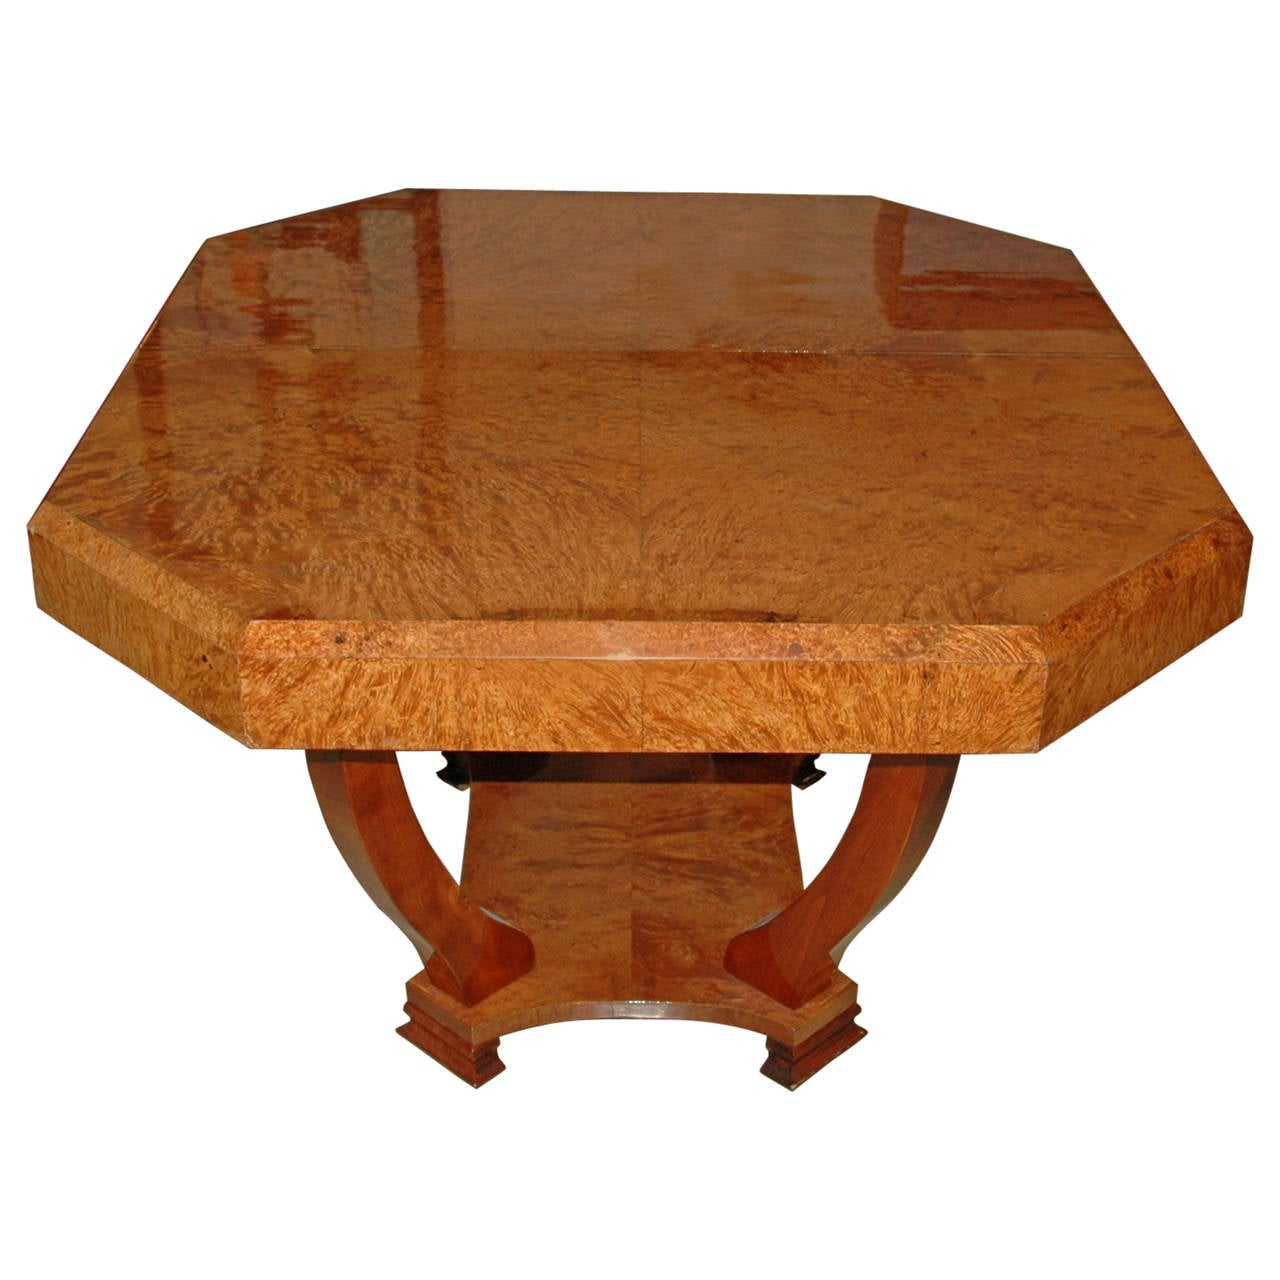 amboyna art deco table from france for sale at 1stdibs. Black Bedroom Furniture Sets. Home Design Ideas